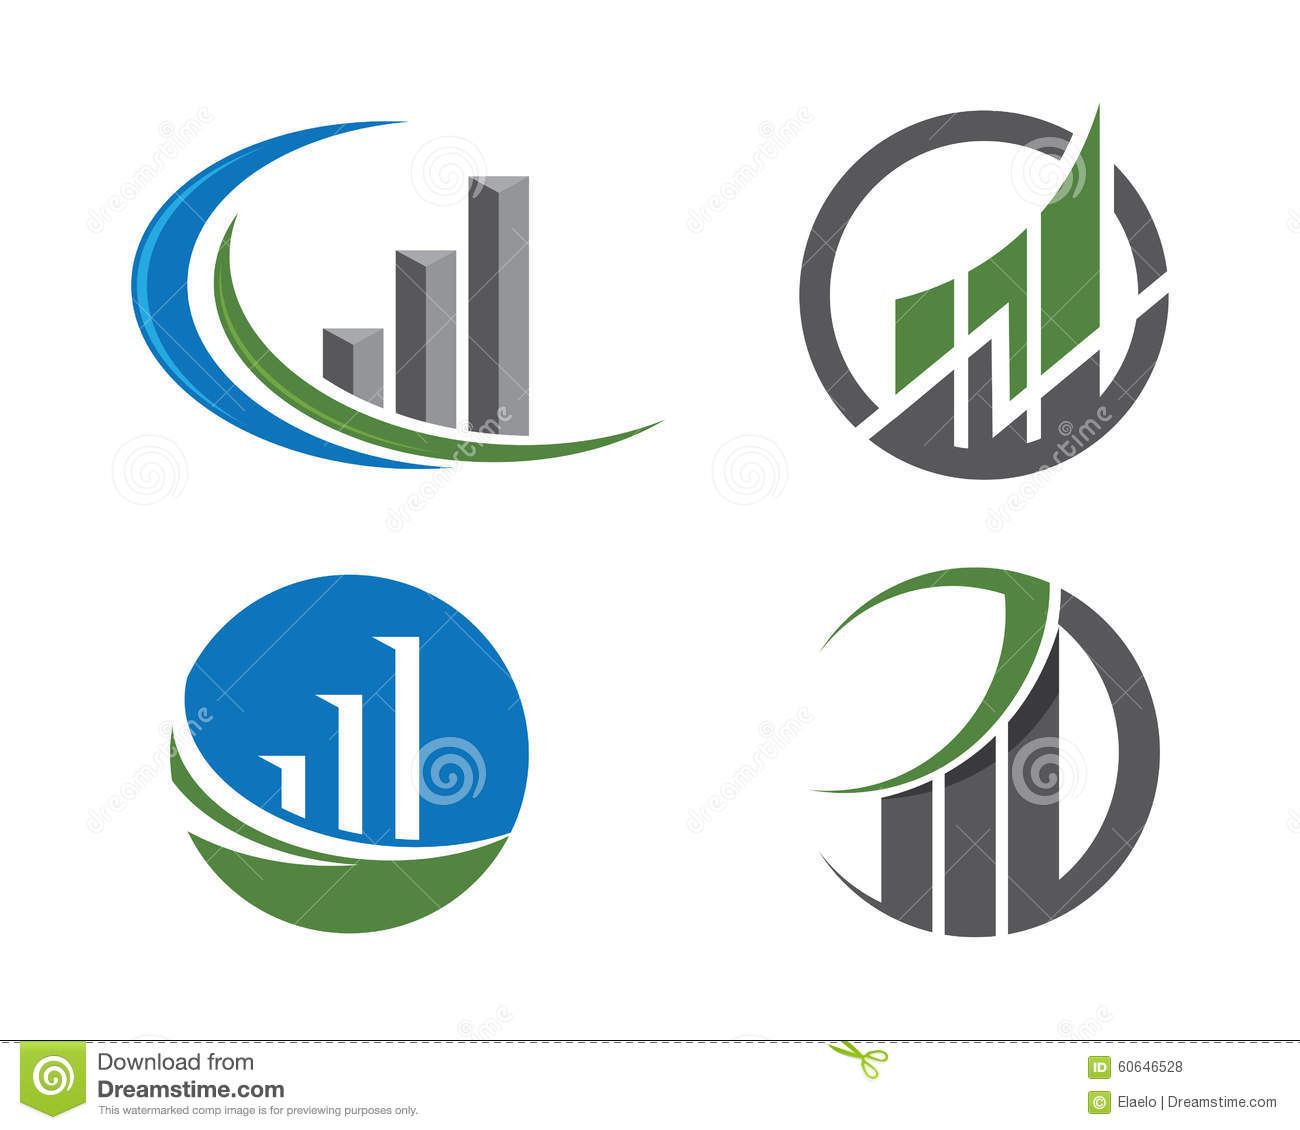 Finance: Finance Logo Stock Vector. Illustration Of Monument